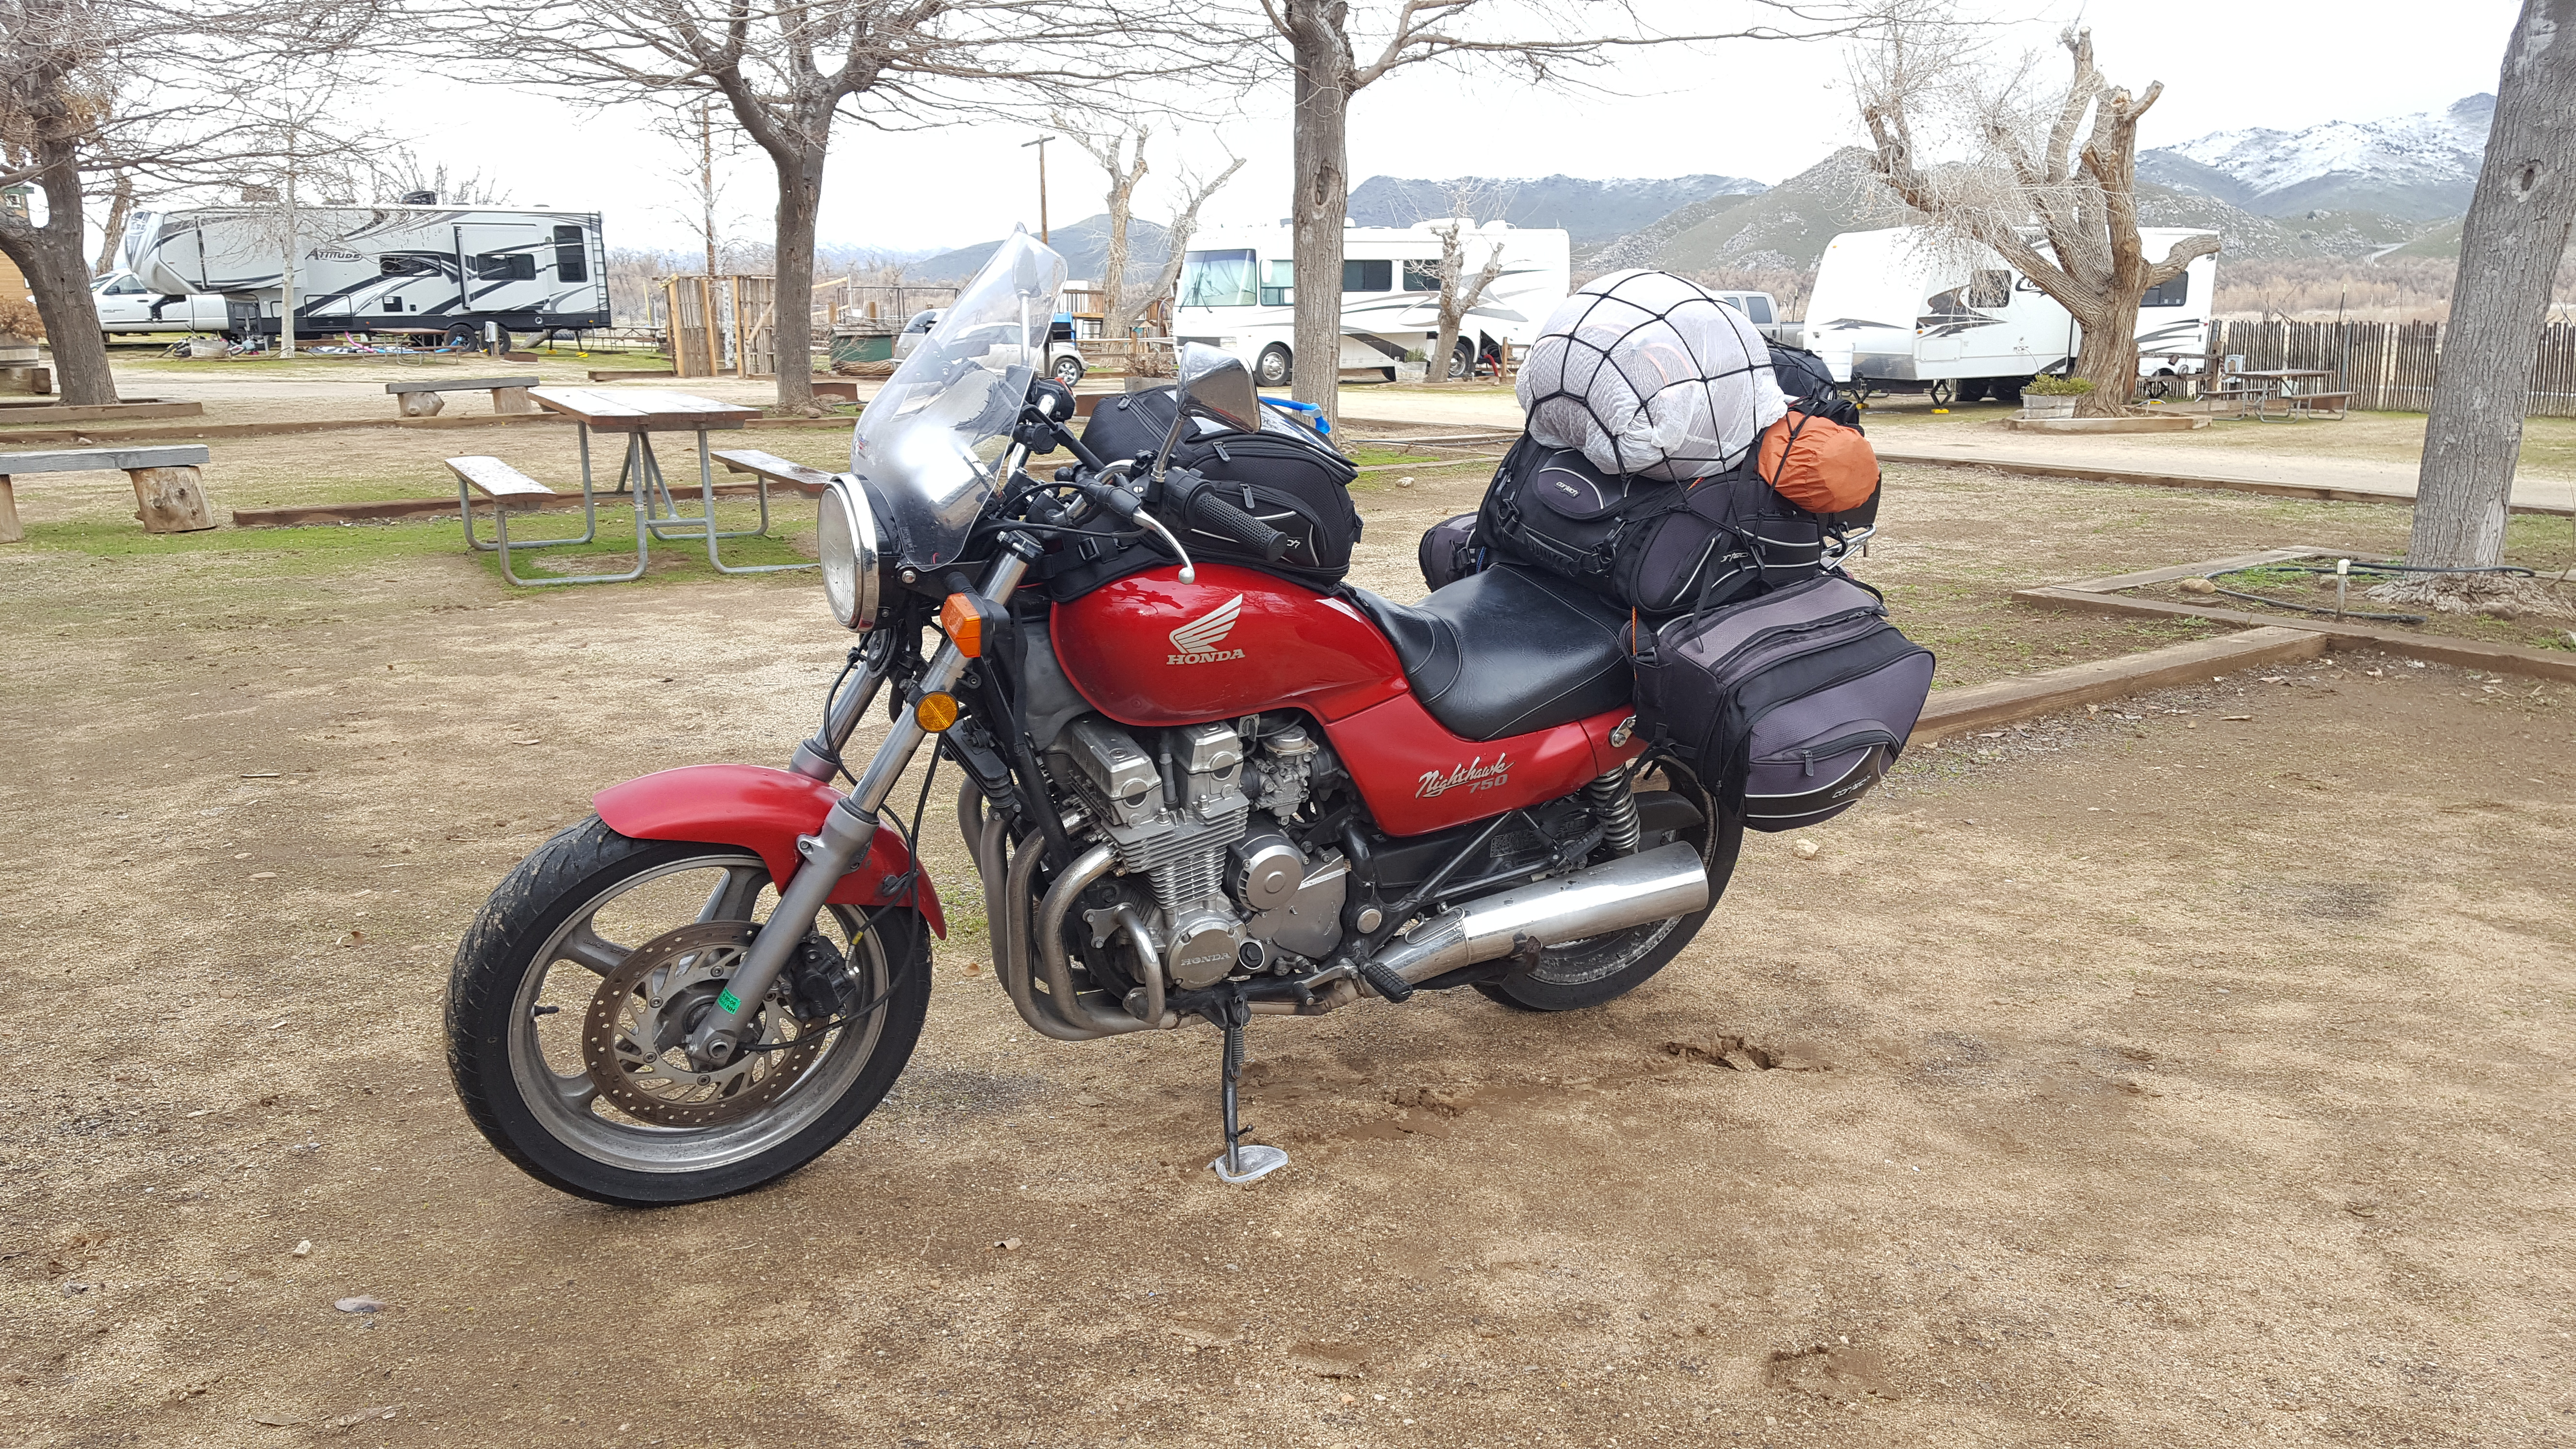 Red Honda Nighthawk fully ready for touring with a windshield, saddle bags, trunk bag, tank bag, and other goodies strapped to it